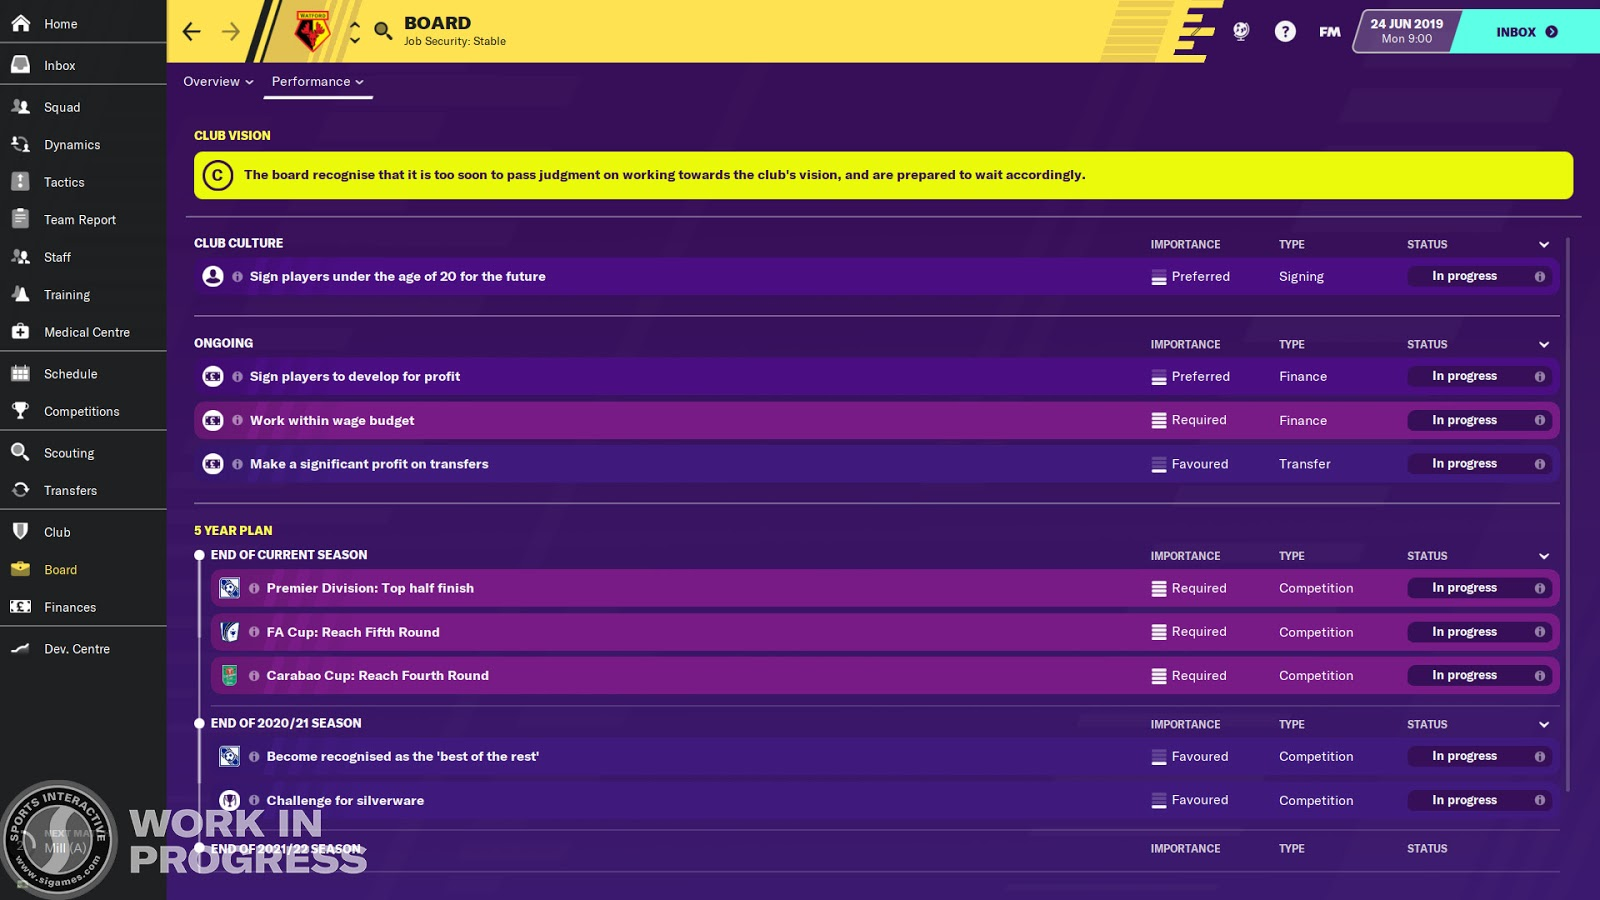 An overview of club vision in Football Manager 2020